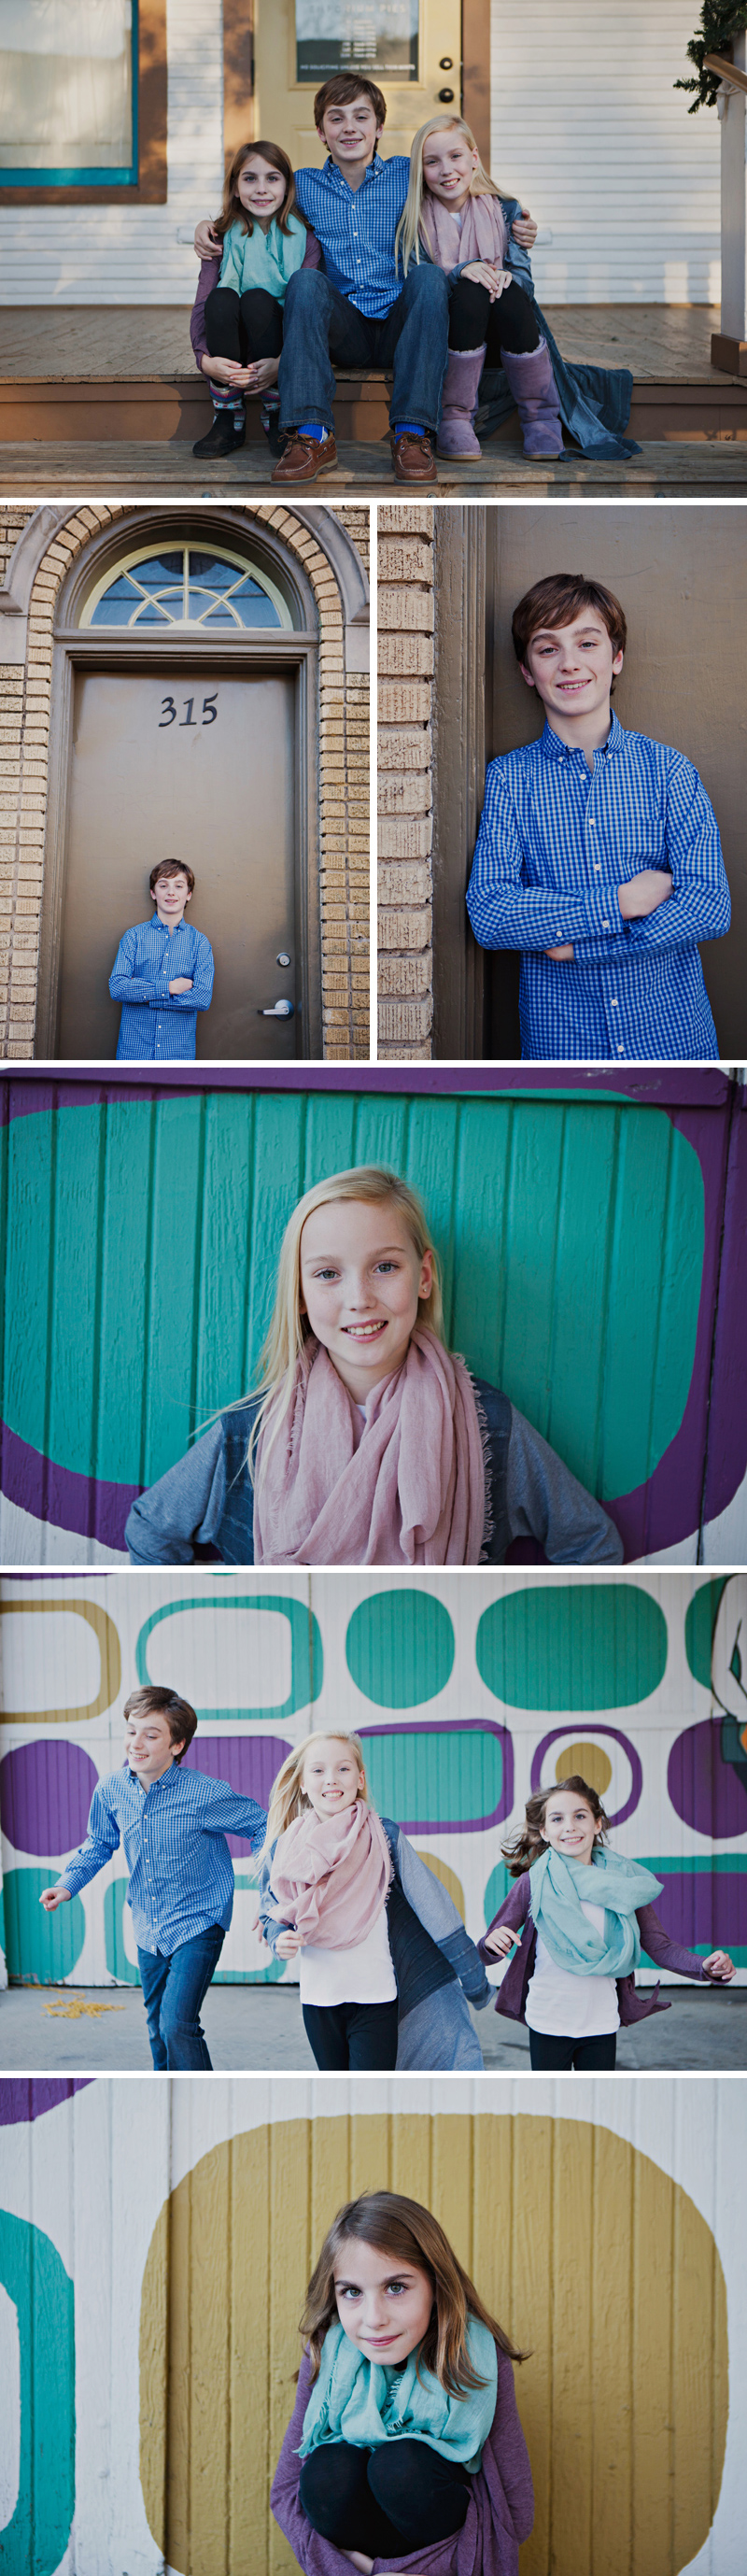 Dallas-Family-Photographerc077